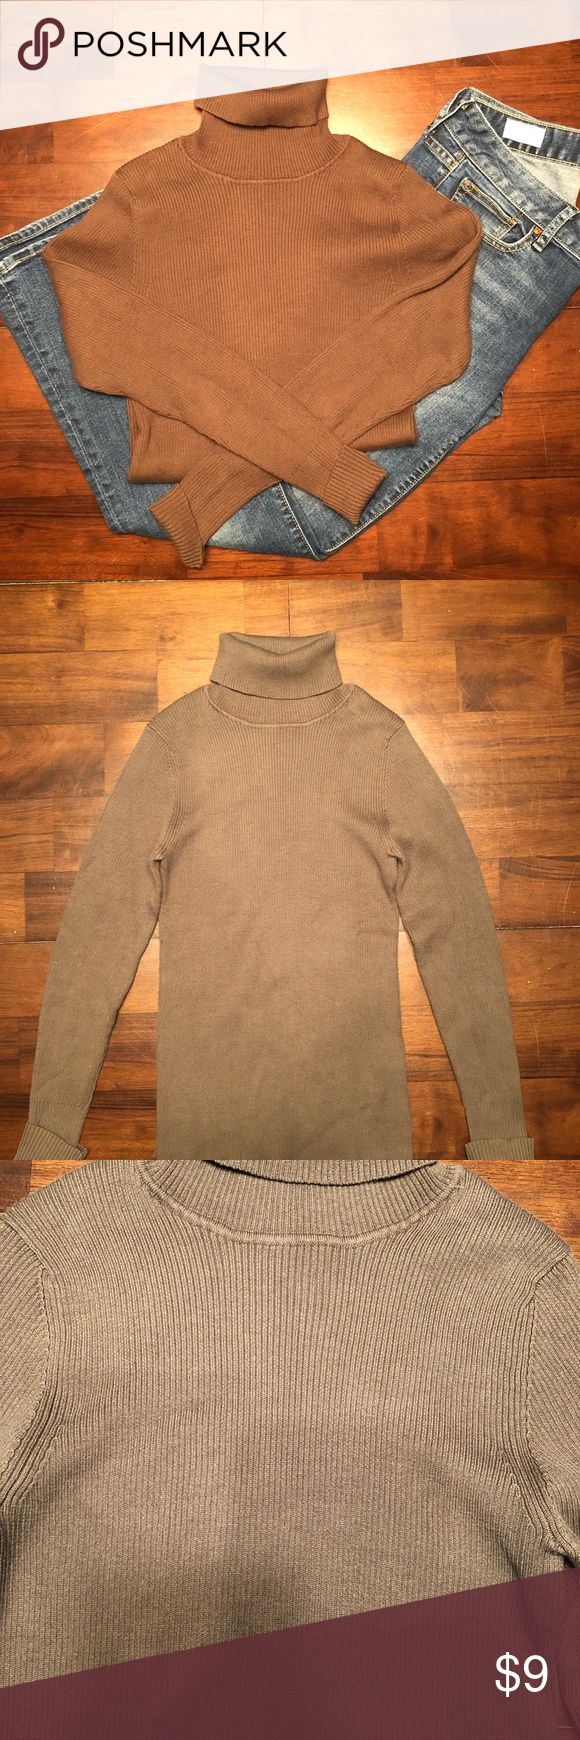 Women's Old Navy Turtleneck Sweater Shirt Size S 100% Cotton with no holes or stains. Chocolate brown in color. Slim, tighter fit. Great for layering under a sweater or vest. Old Navy Tops Tees - Long Sleeve